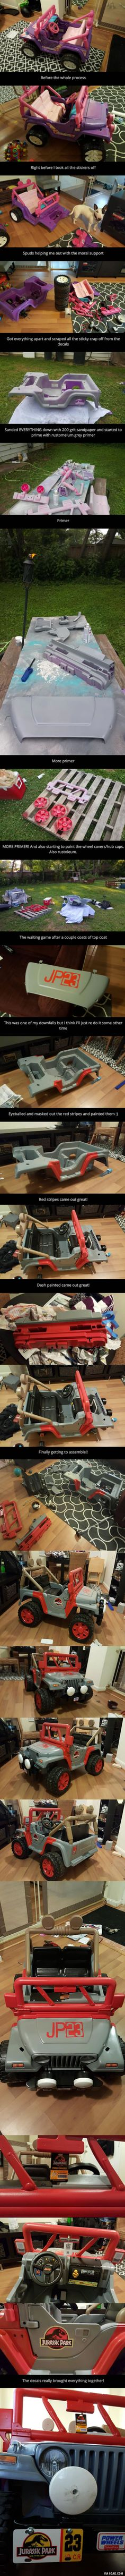 This dad repainted a Barbie Jeep to Jurassic Park Jeep for his son